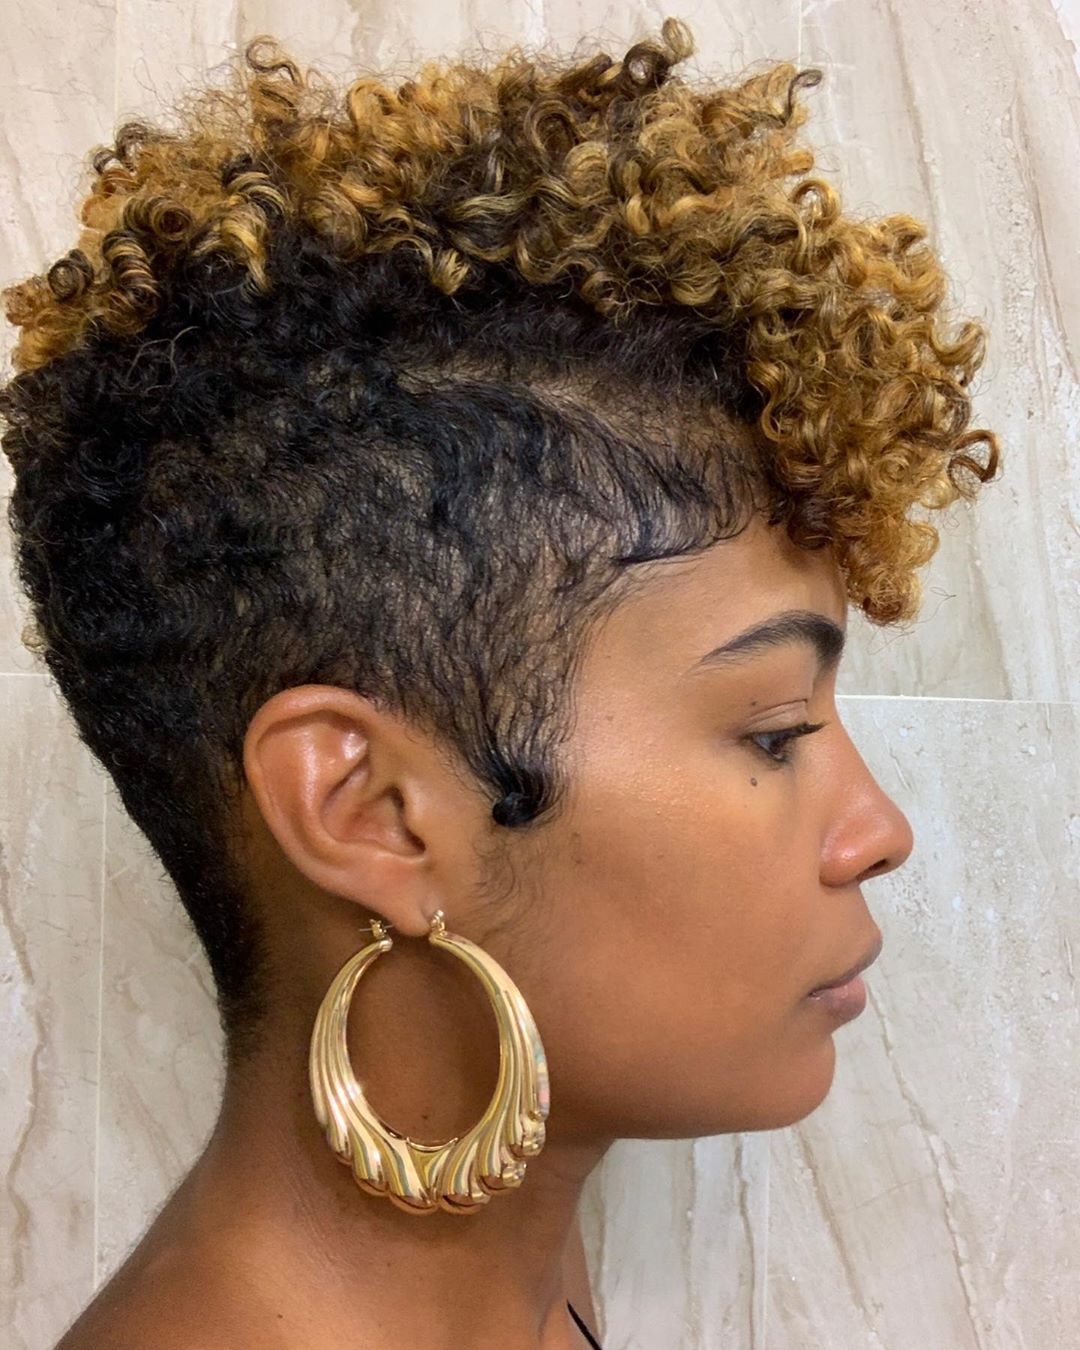 Pin On Natural Hairstyles And Hair Care